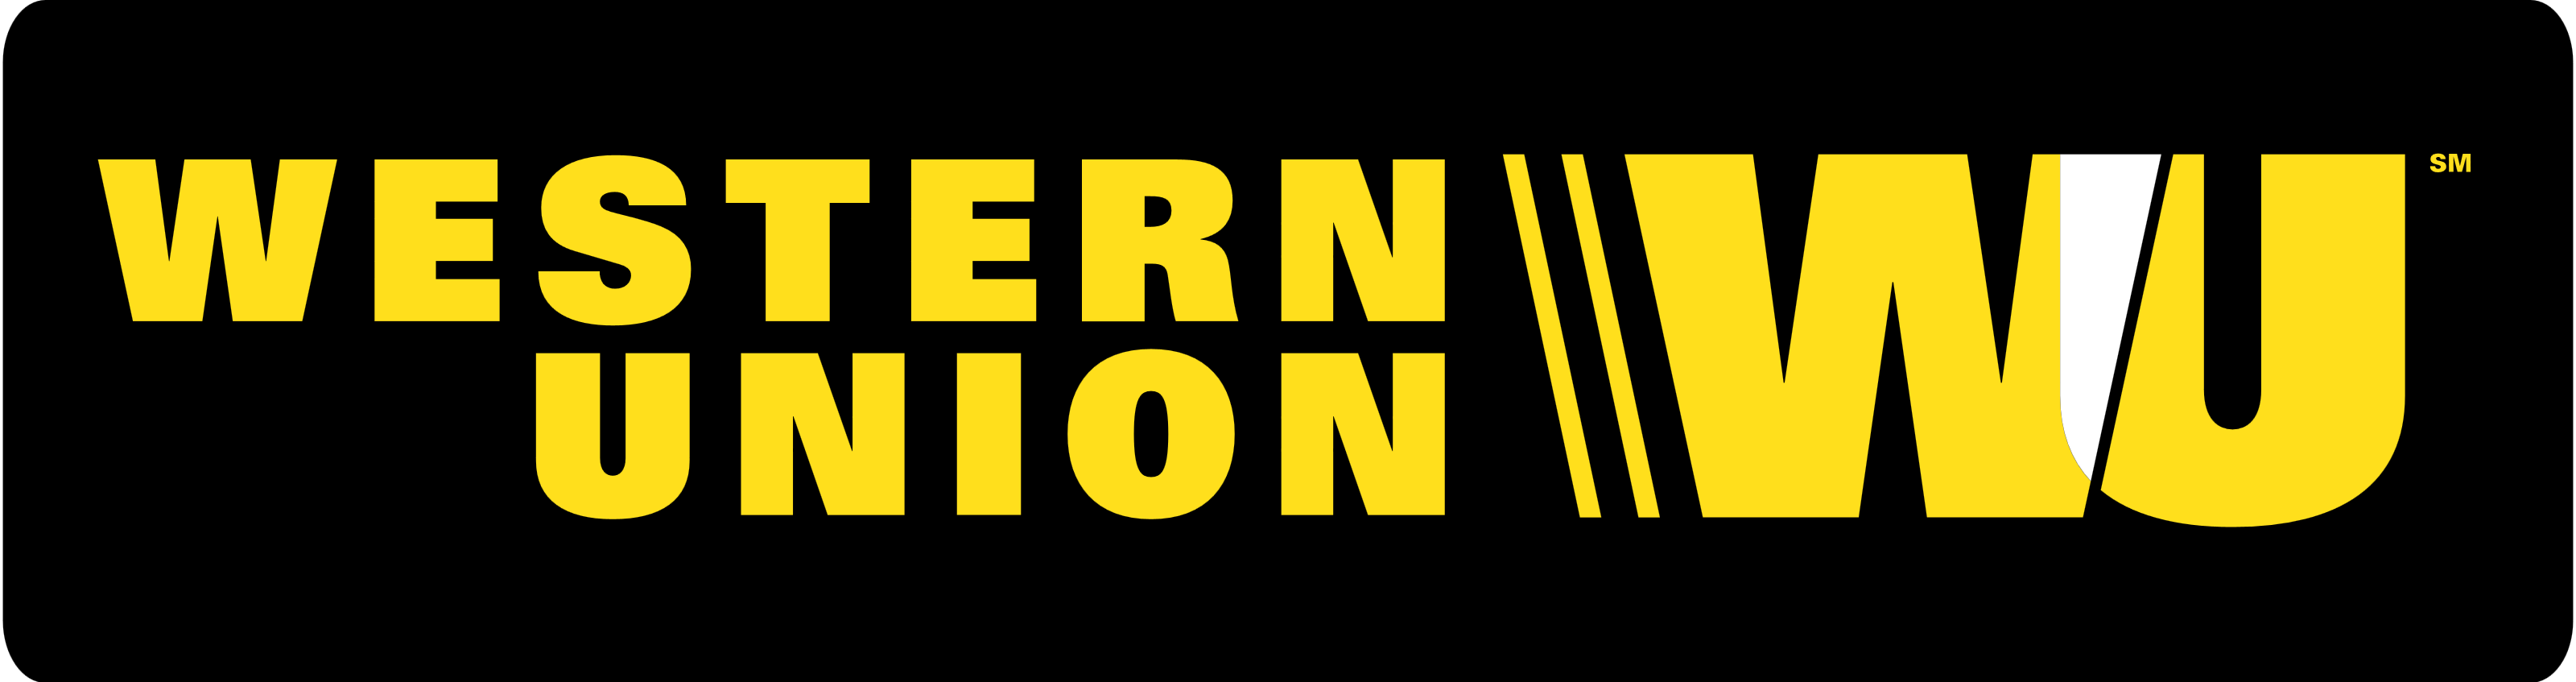 Western union logo clipart clip black and white stock Western Union – Logos, brands and logotypes clip black and white stock